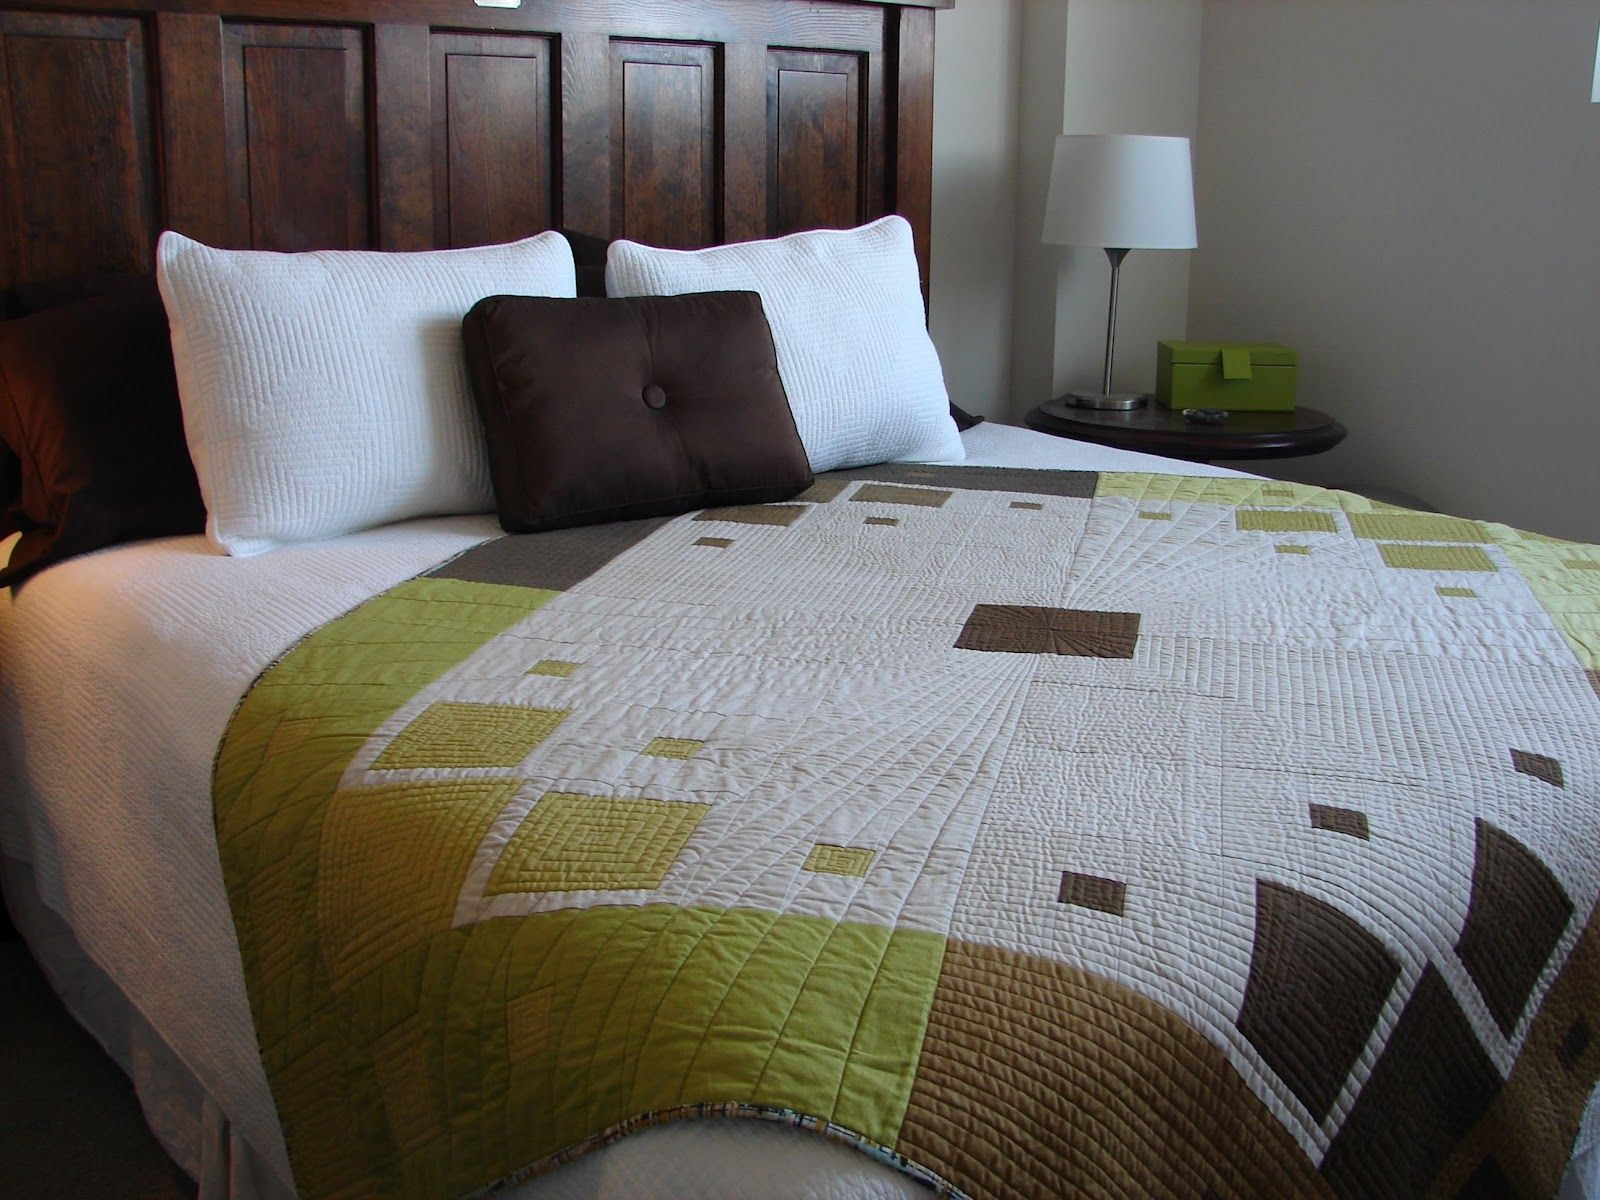 Tallgrass Prairie Studio: Time to Make the Bed | Craft: One Day I\'ll ...